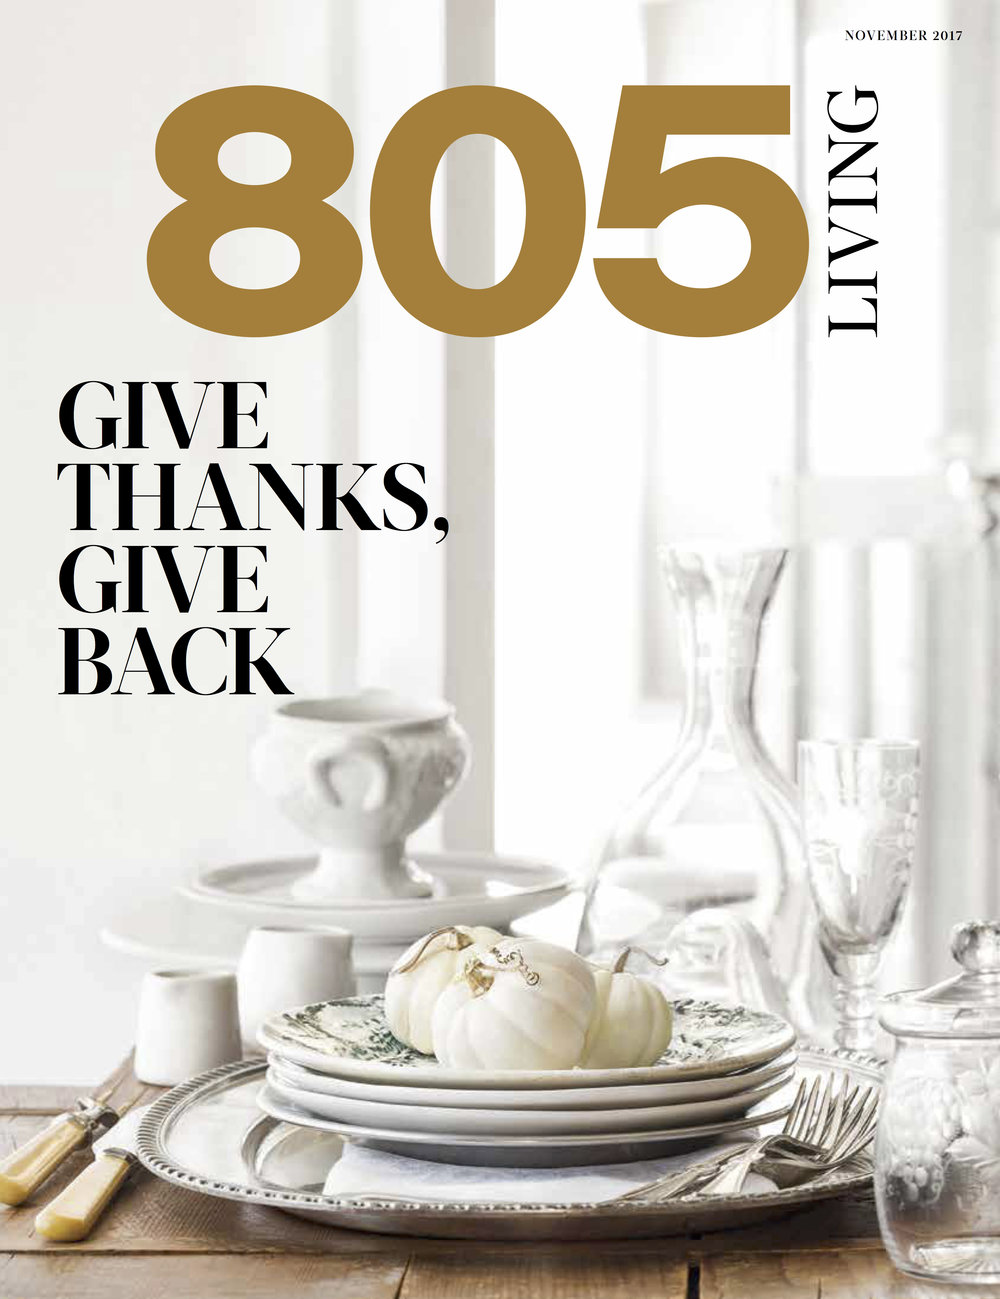 805 Living Nov 2017 Elemental Good Deeds.jpg